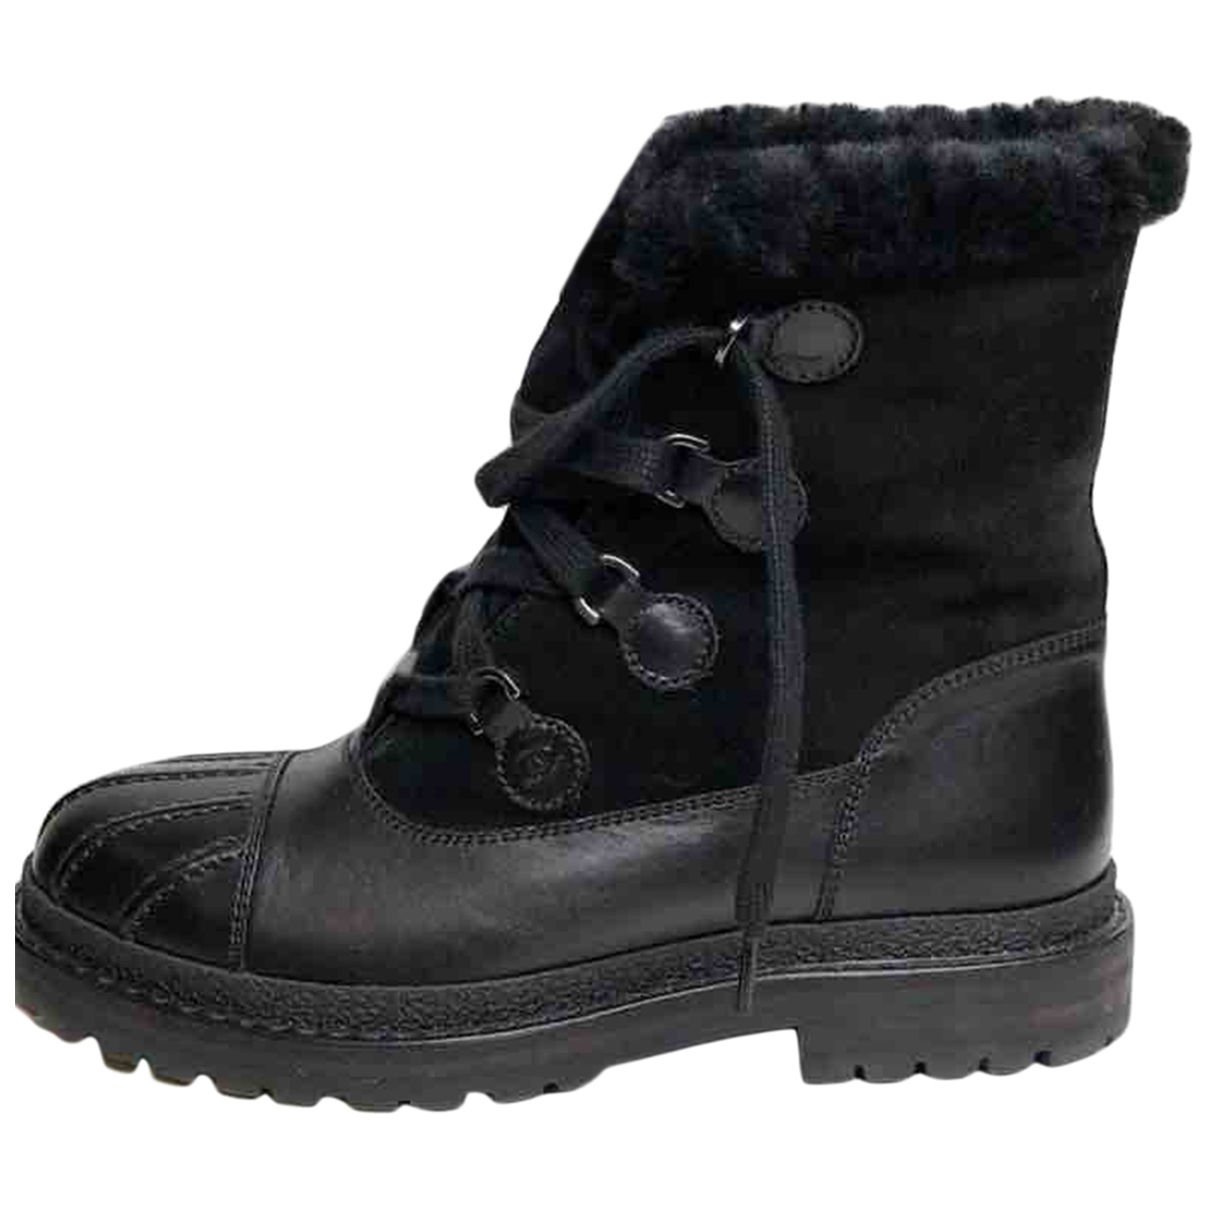 Chanel \N Black Suede Boots for Women 38.5 EU